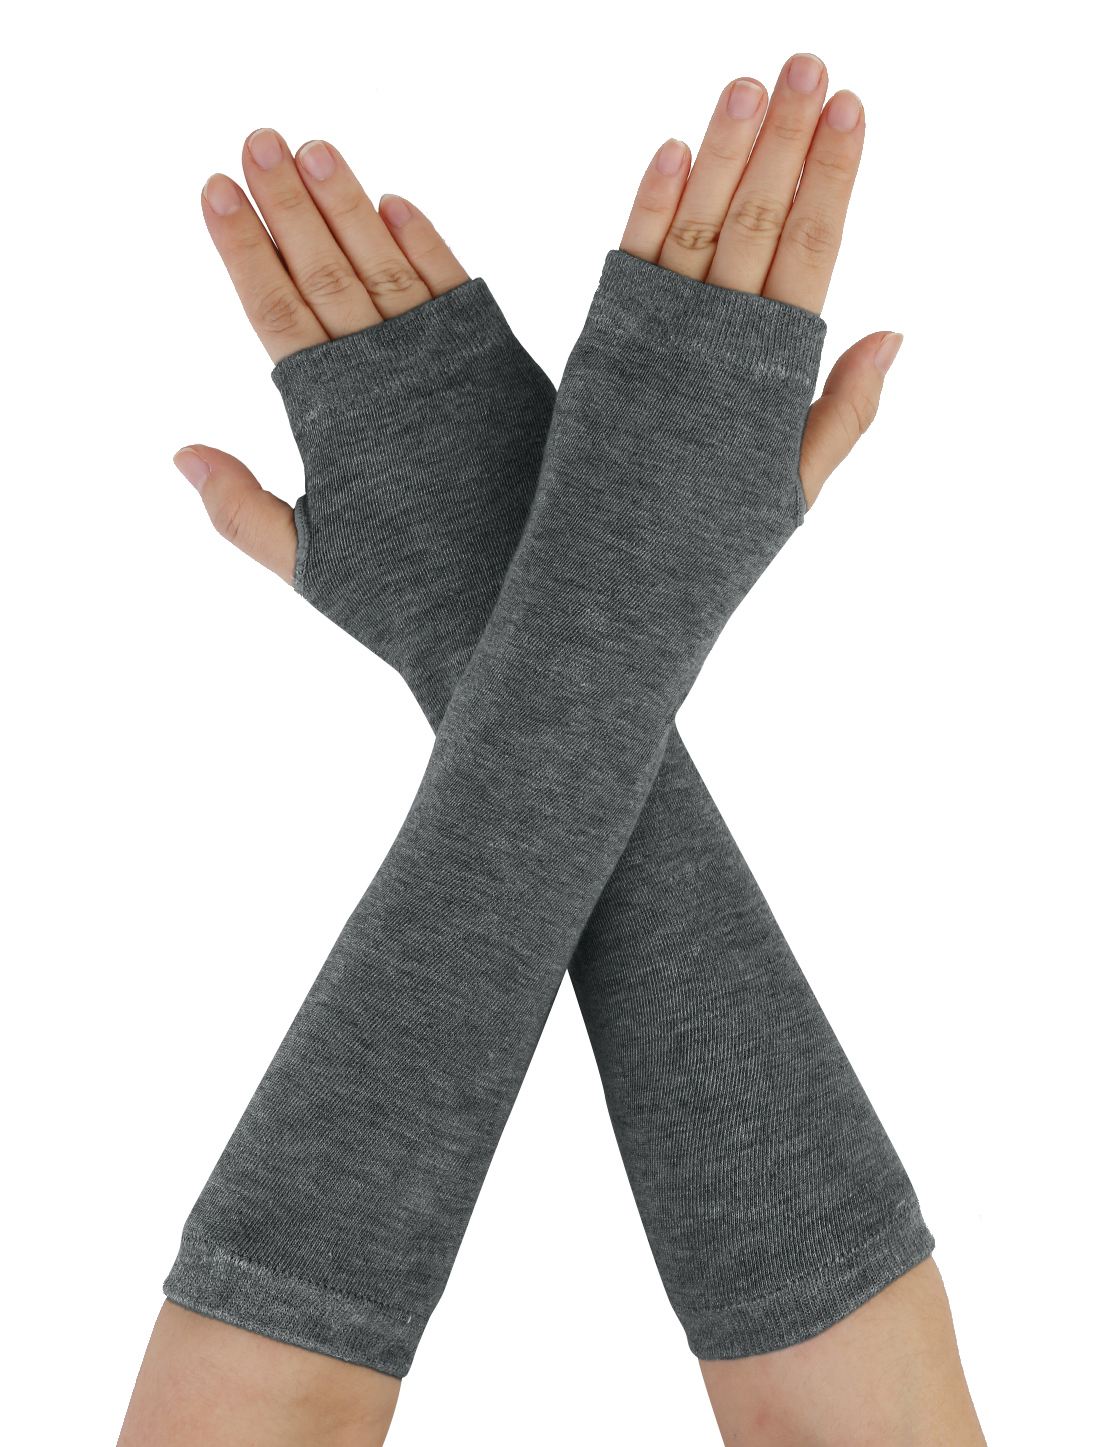 Dark Gray Fingerless Elastic Winter Thick Arm Warmers Gloves for Ladies